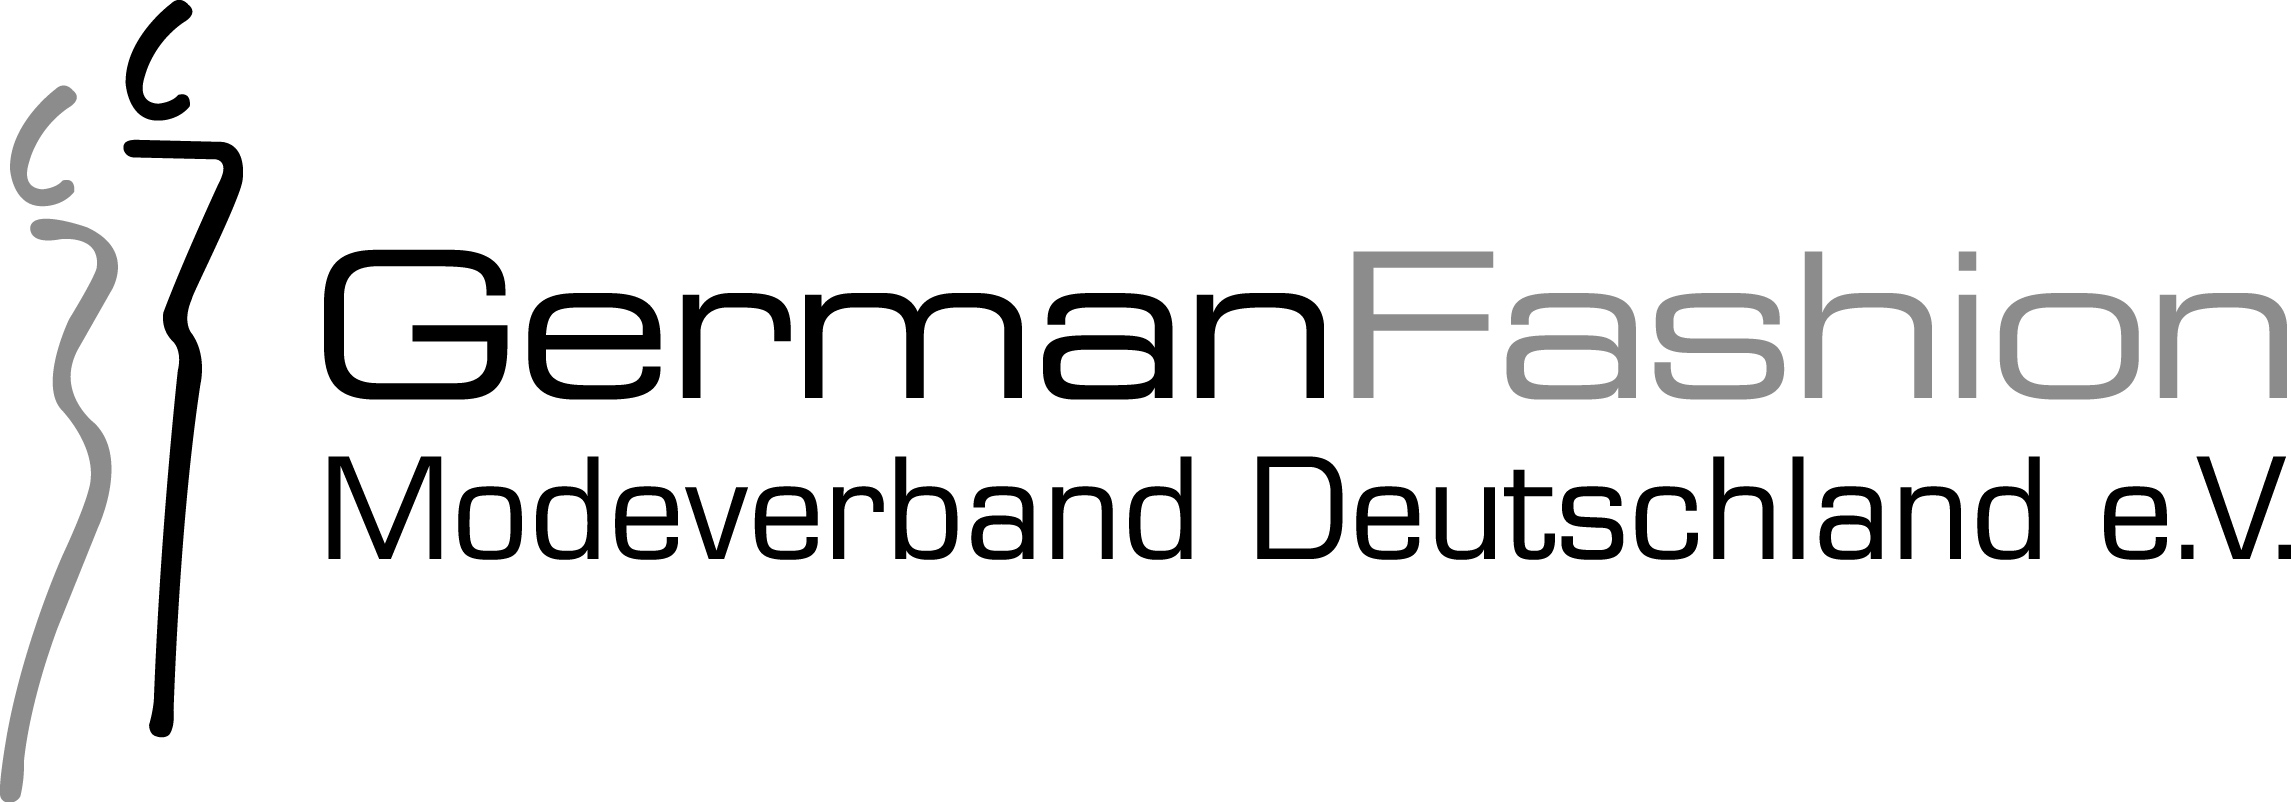 GermanFashionModeverband Logo